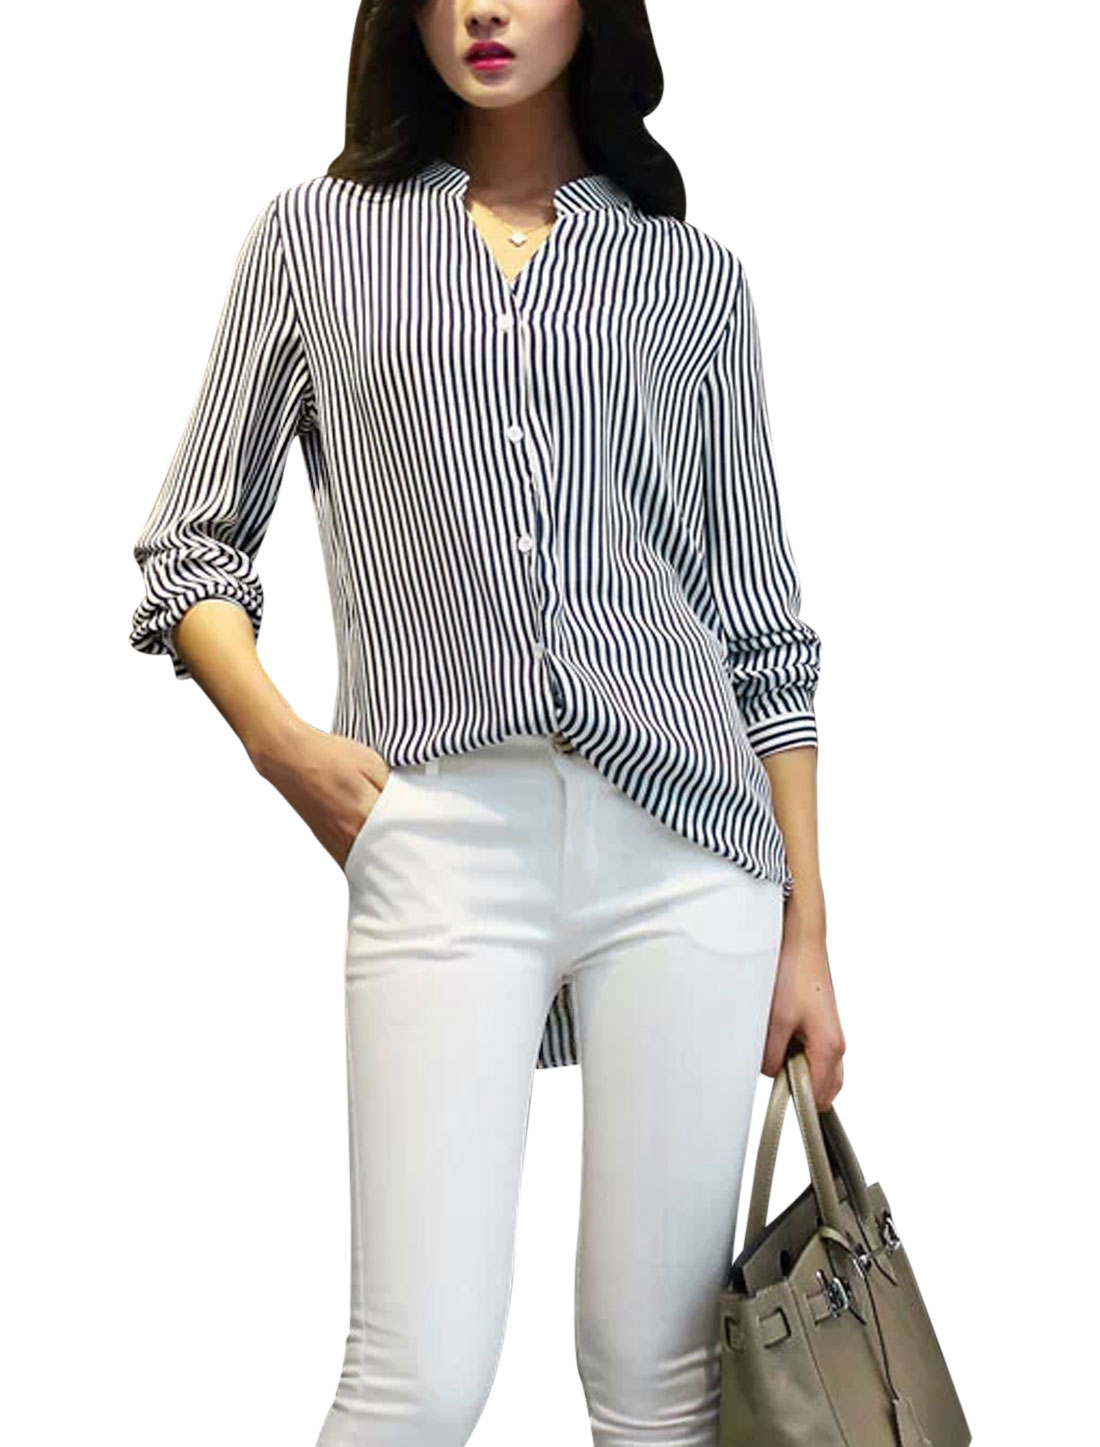 Ladies Mandarin Collar V Neckline Elegant Shirt Navy Blue White S